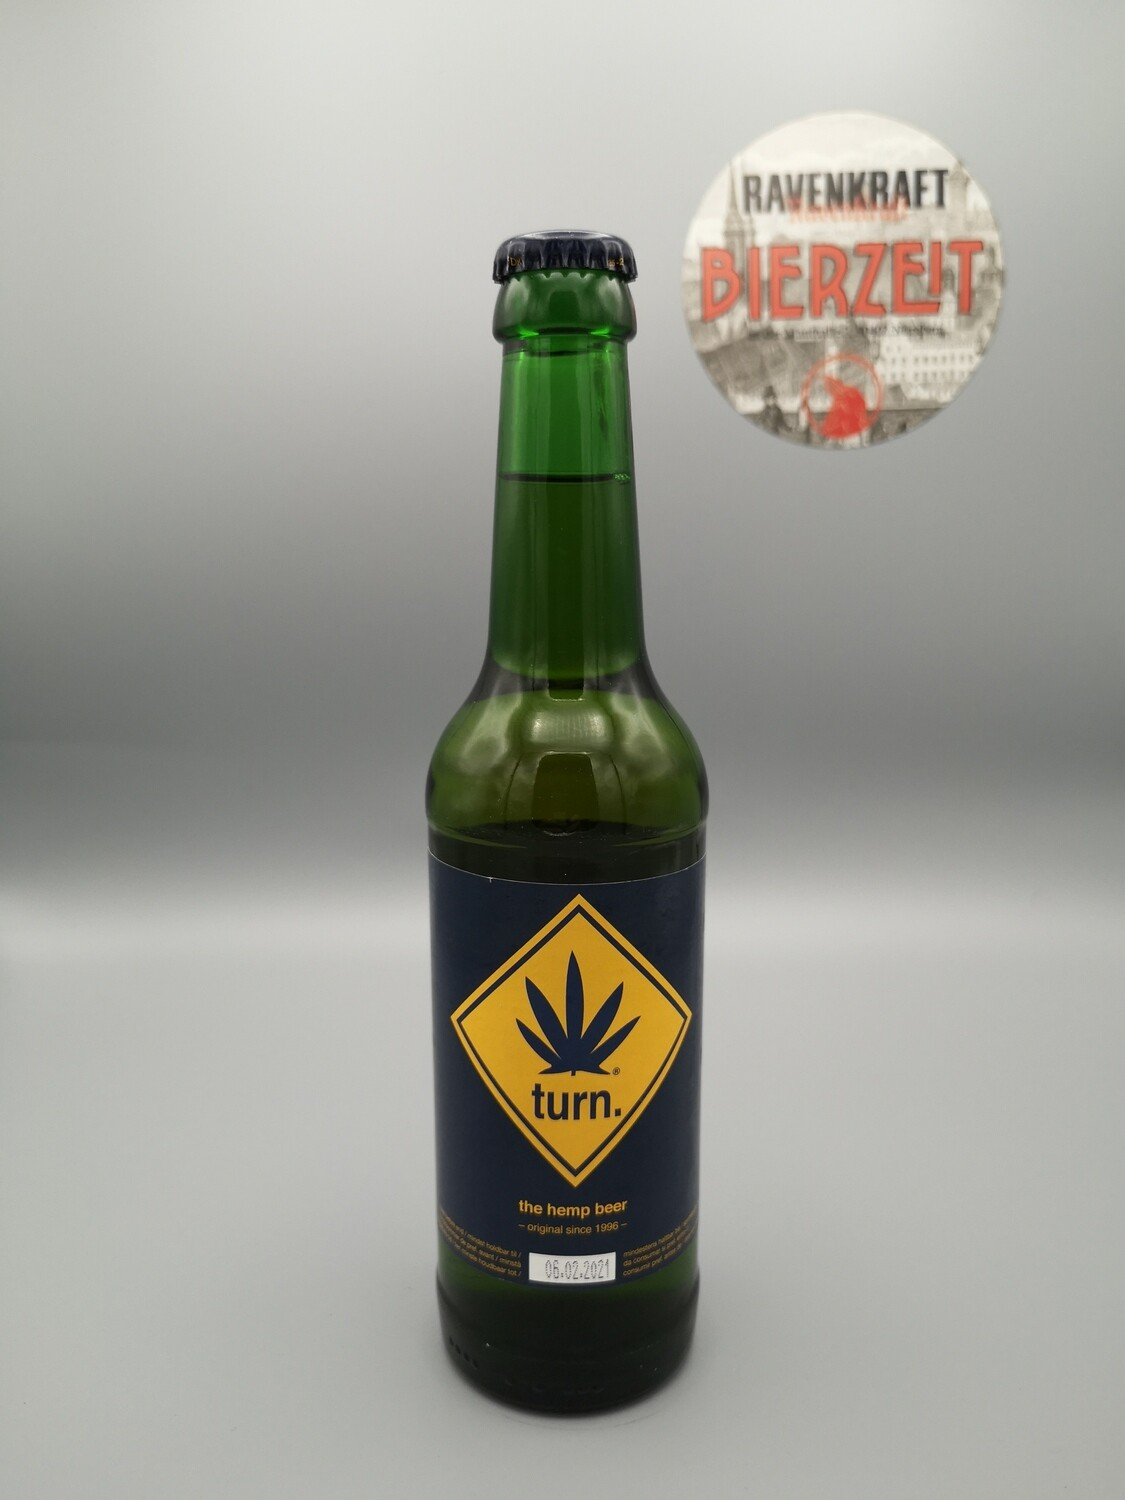 Turn Hanfbier - the hemp beer